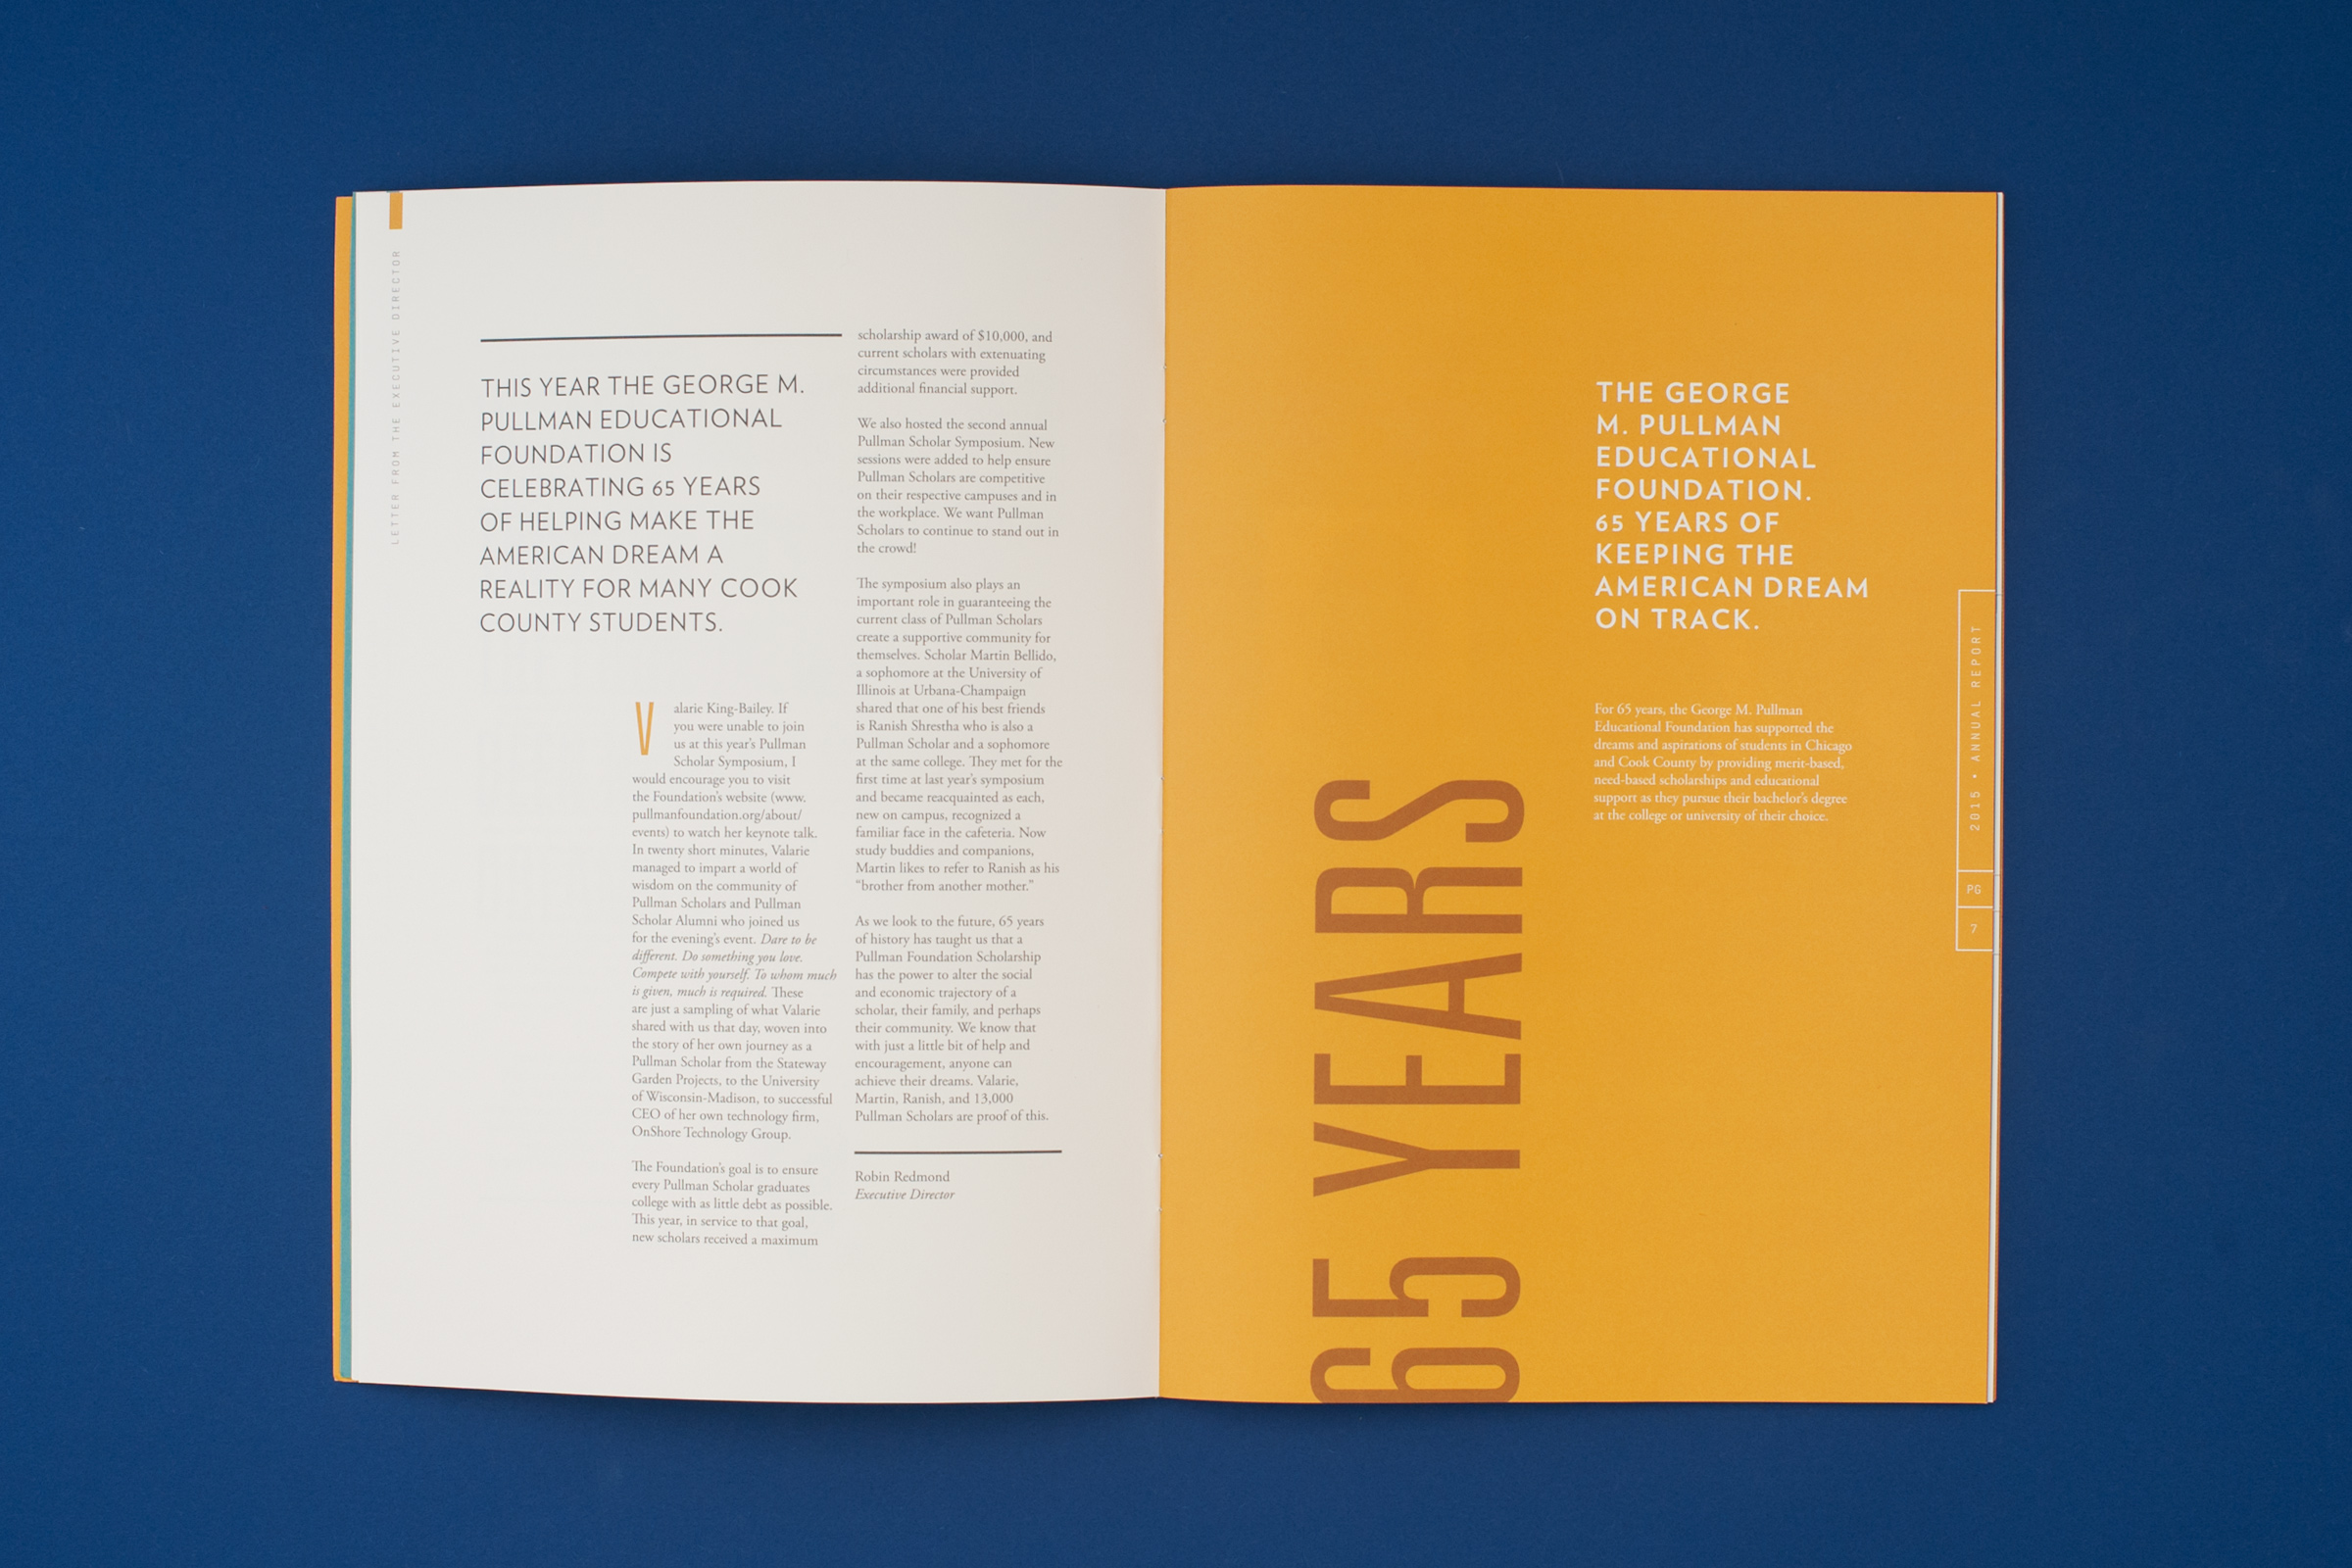 Pullman_Annual_Report_Design_5.jpg